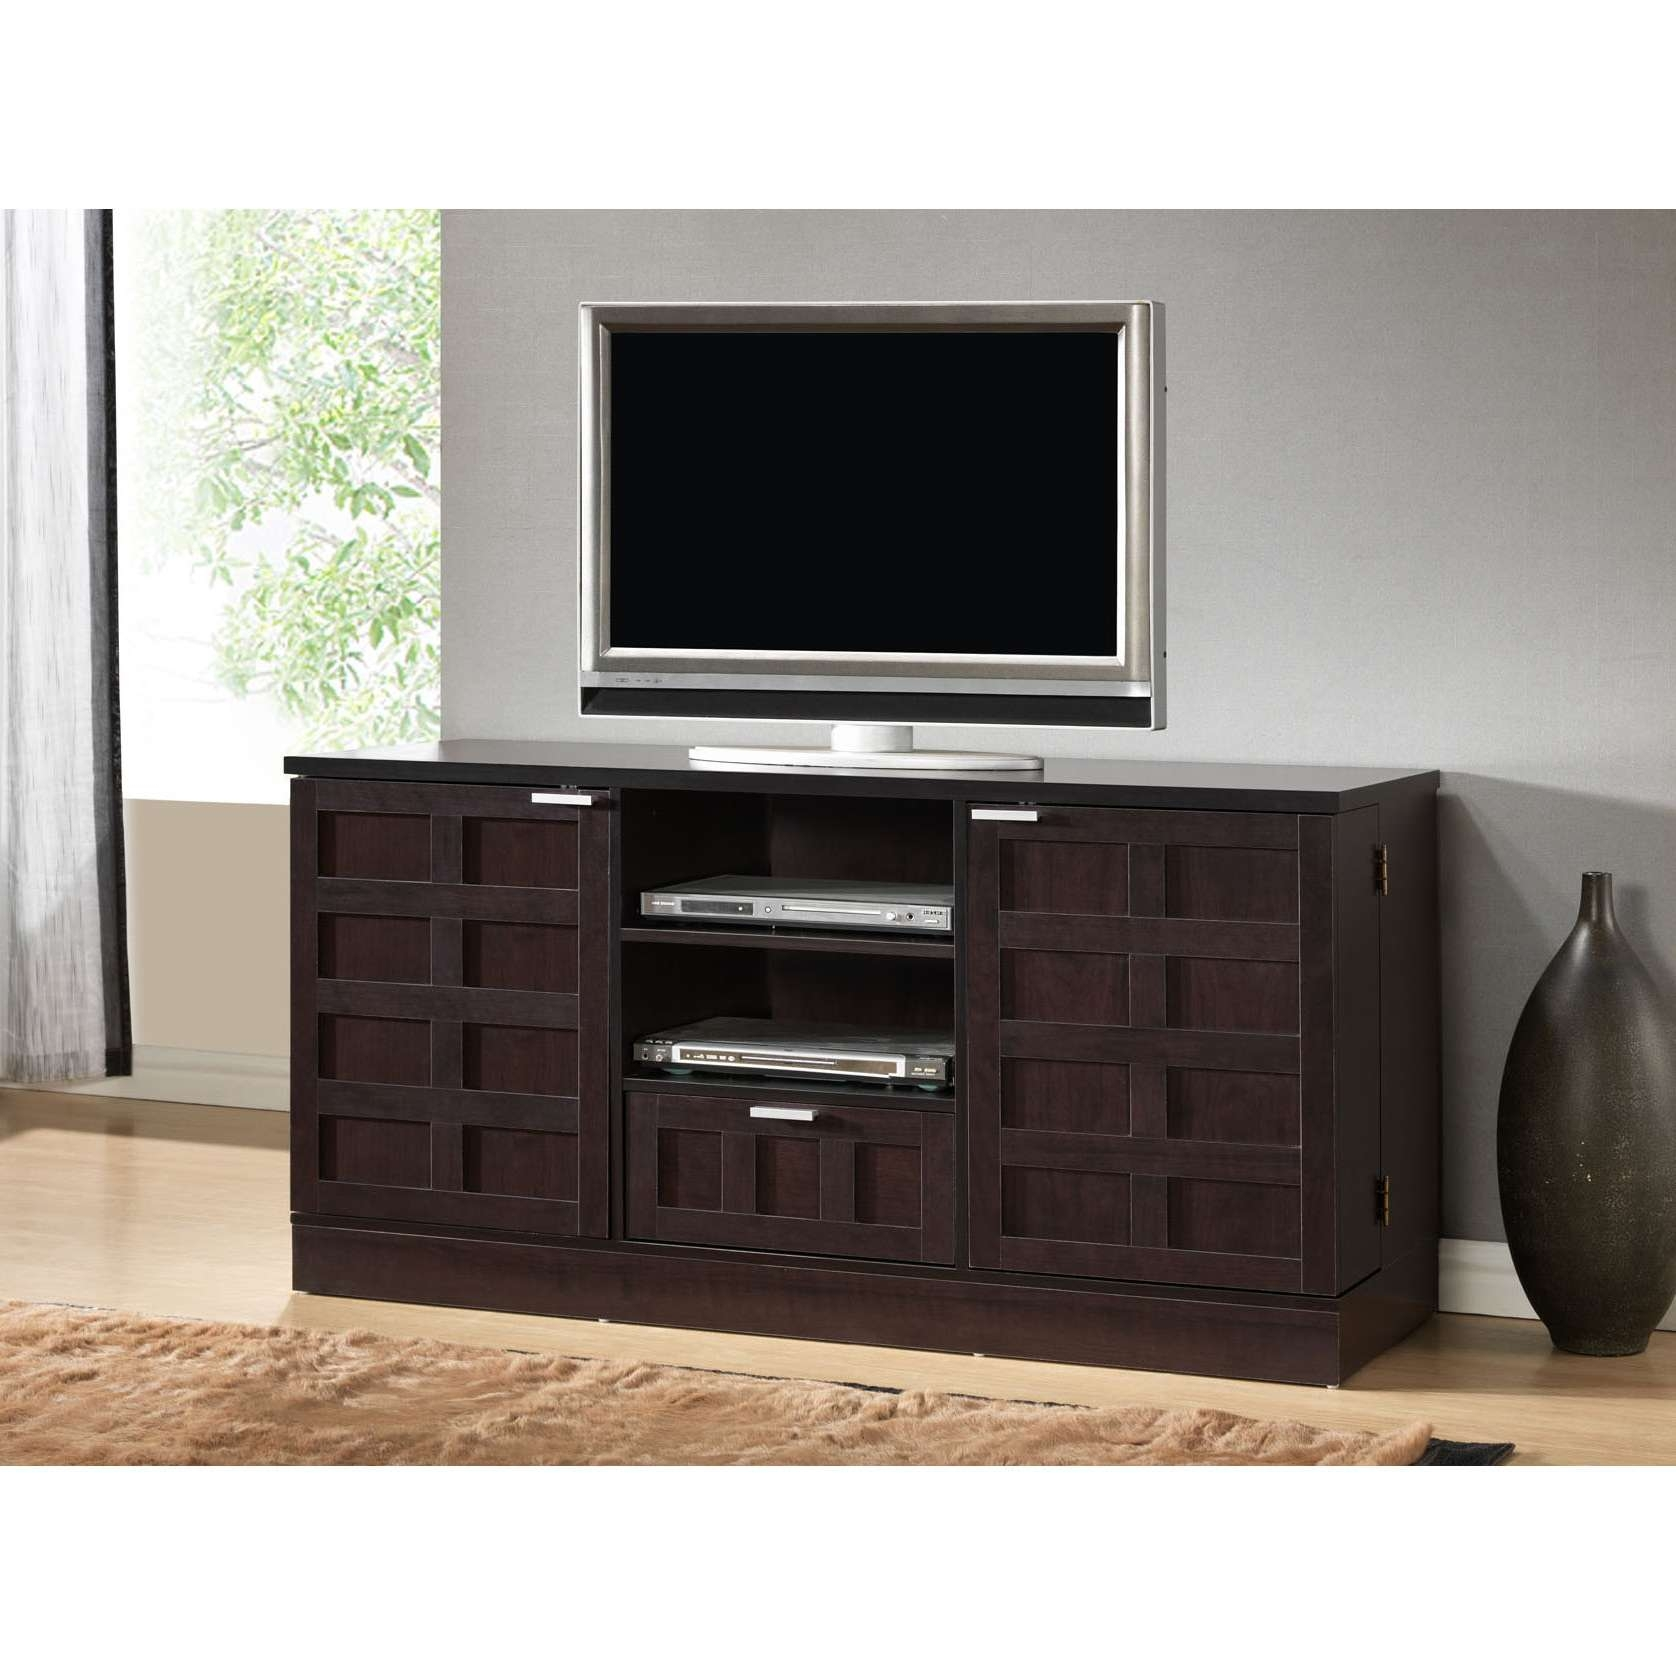 Ideas Modern Tv Cabinet Design Amazing Cabinets For Flat Screens Within Contemporary Tv Cabinets For Flat Screens (View 13 of 20)